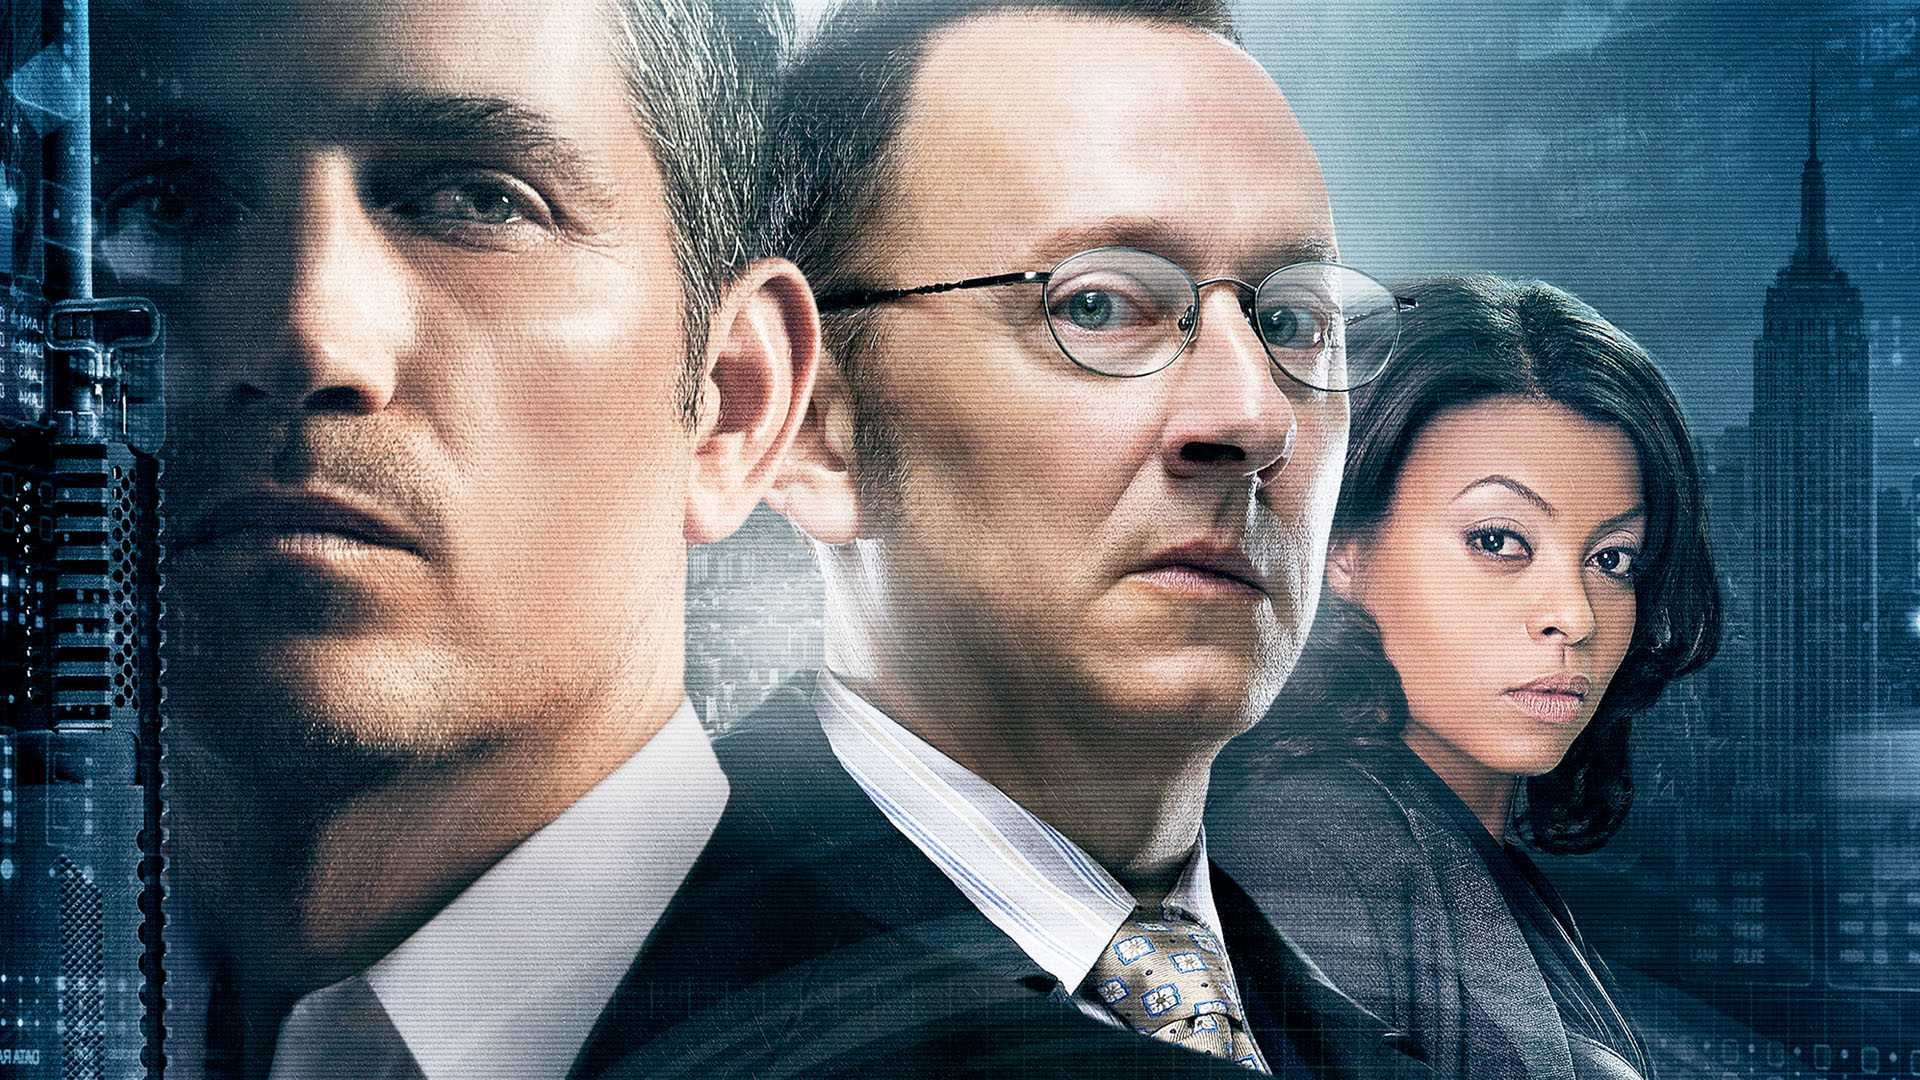 Person Of Interest Full HD Wallpaper And Background